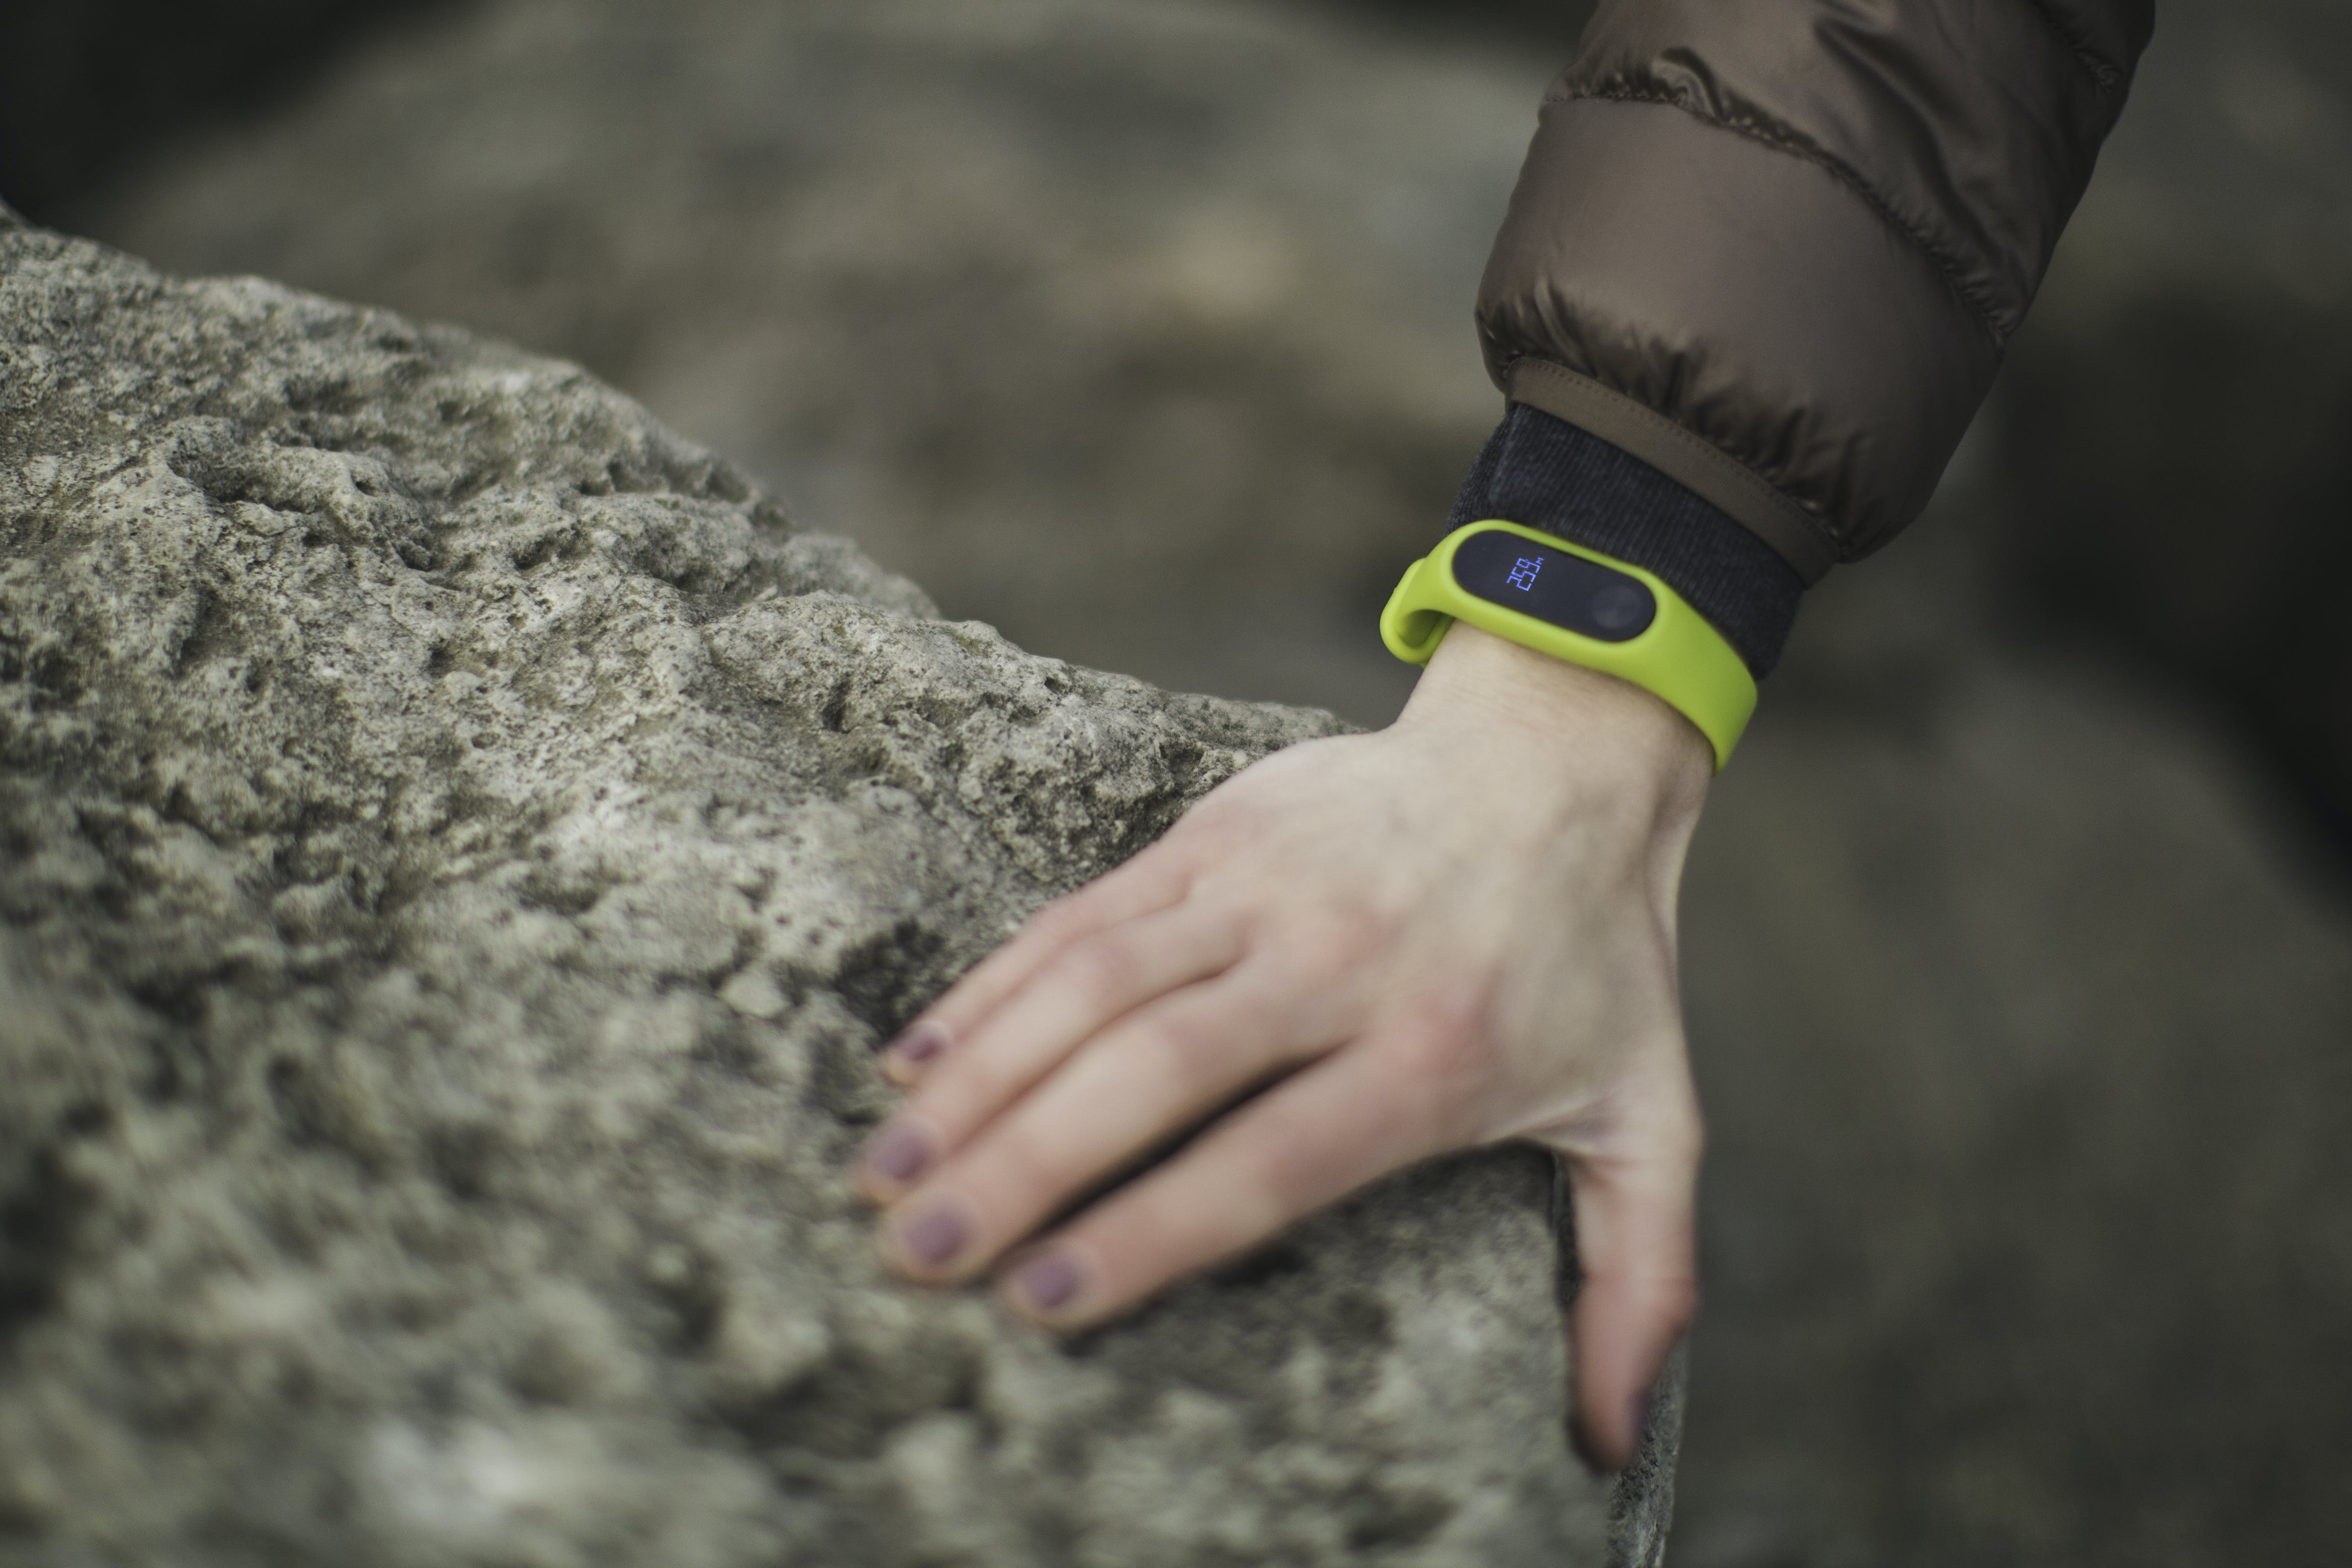 Person Wearing Yellow Fitness Band Holding Rock